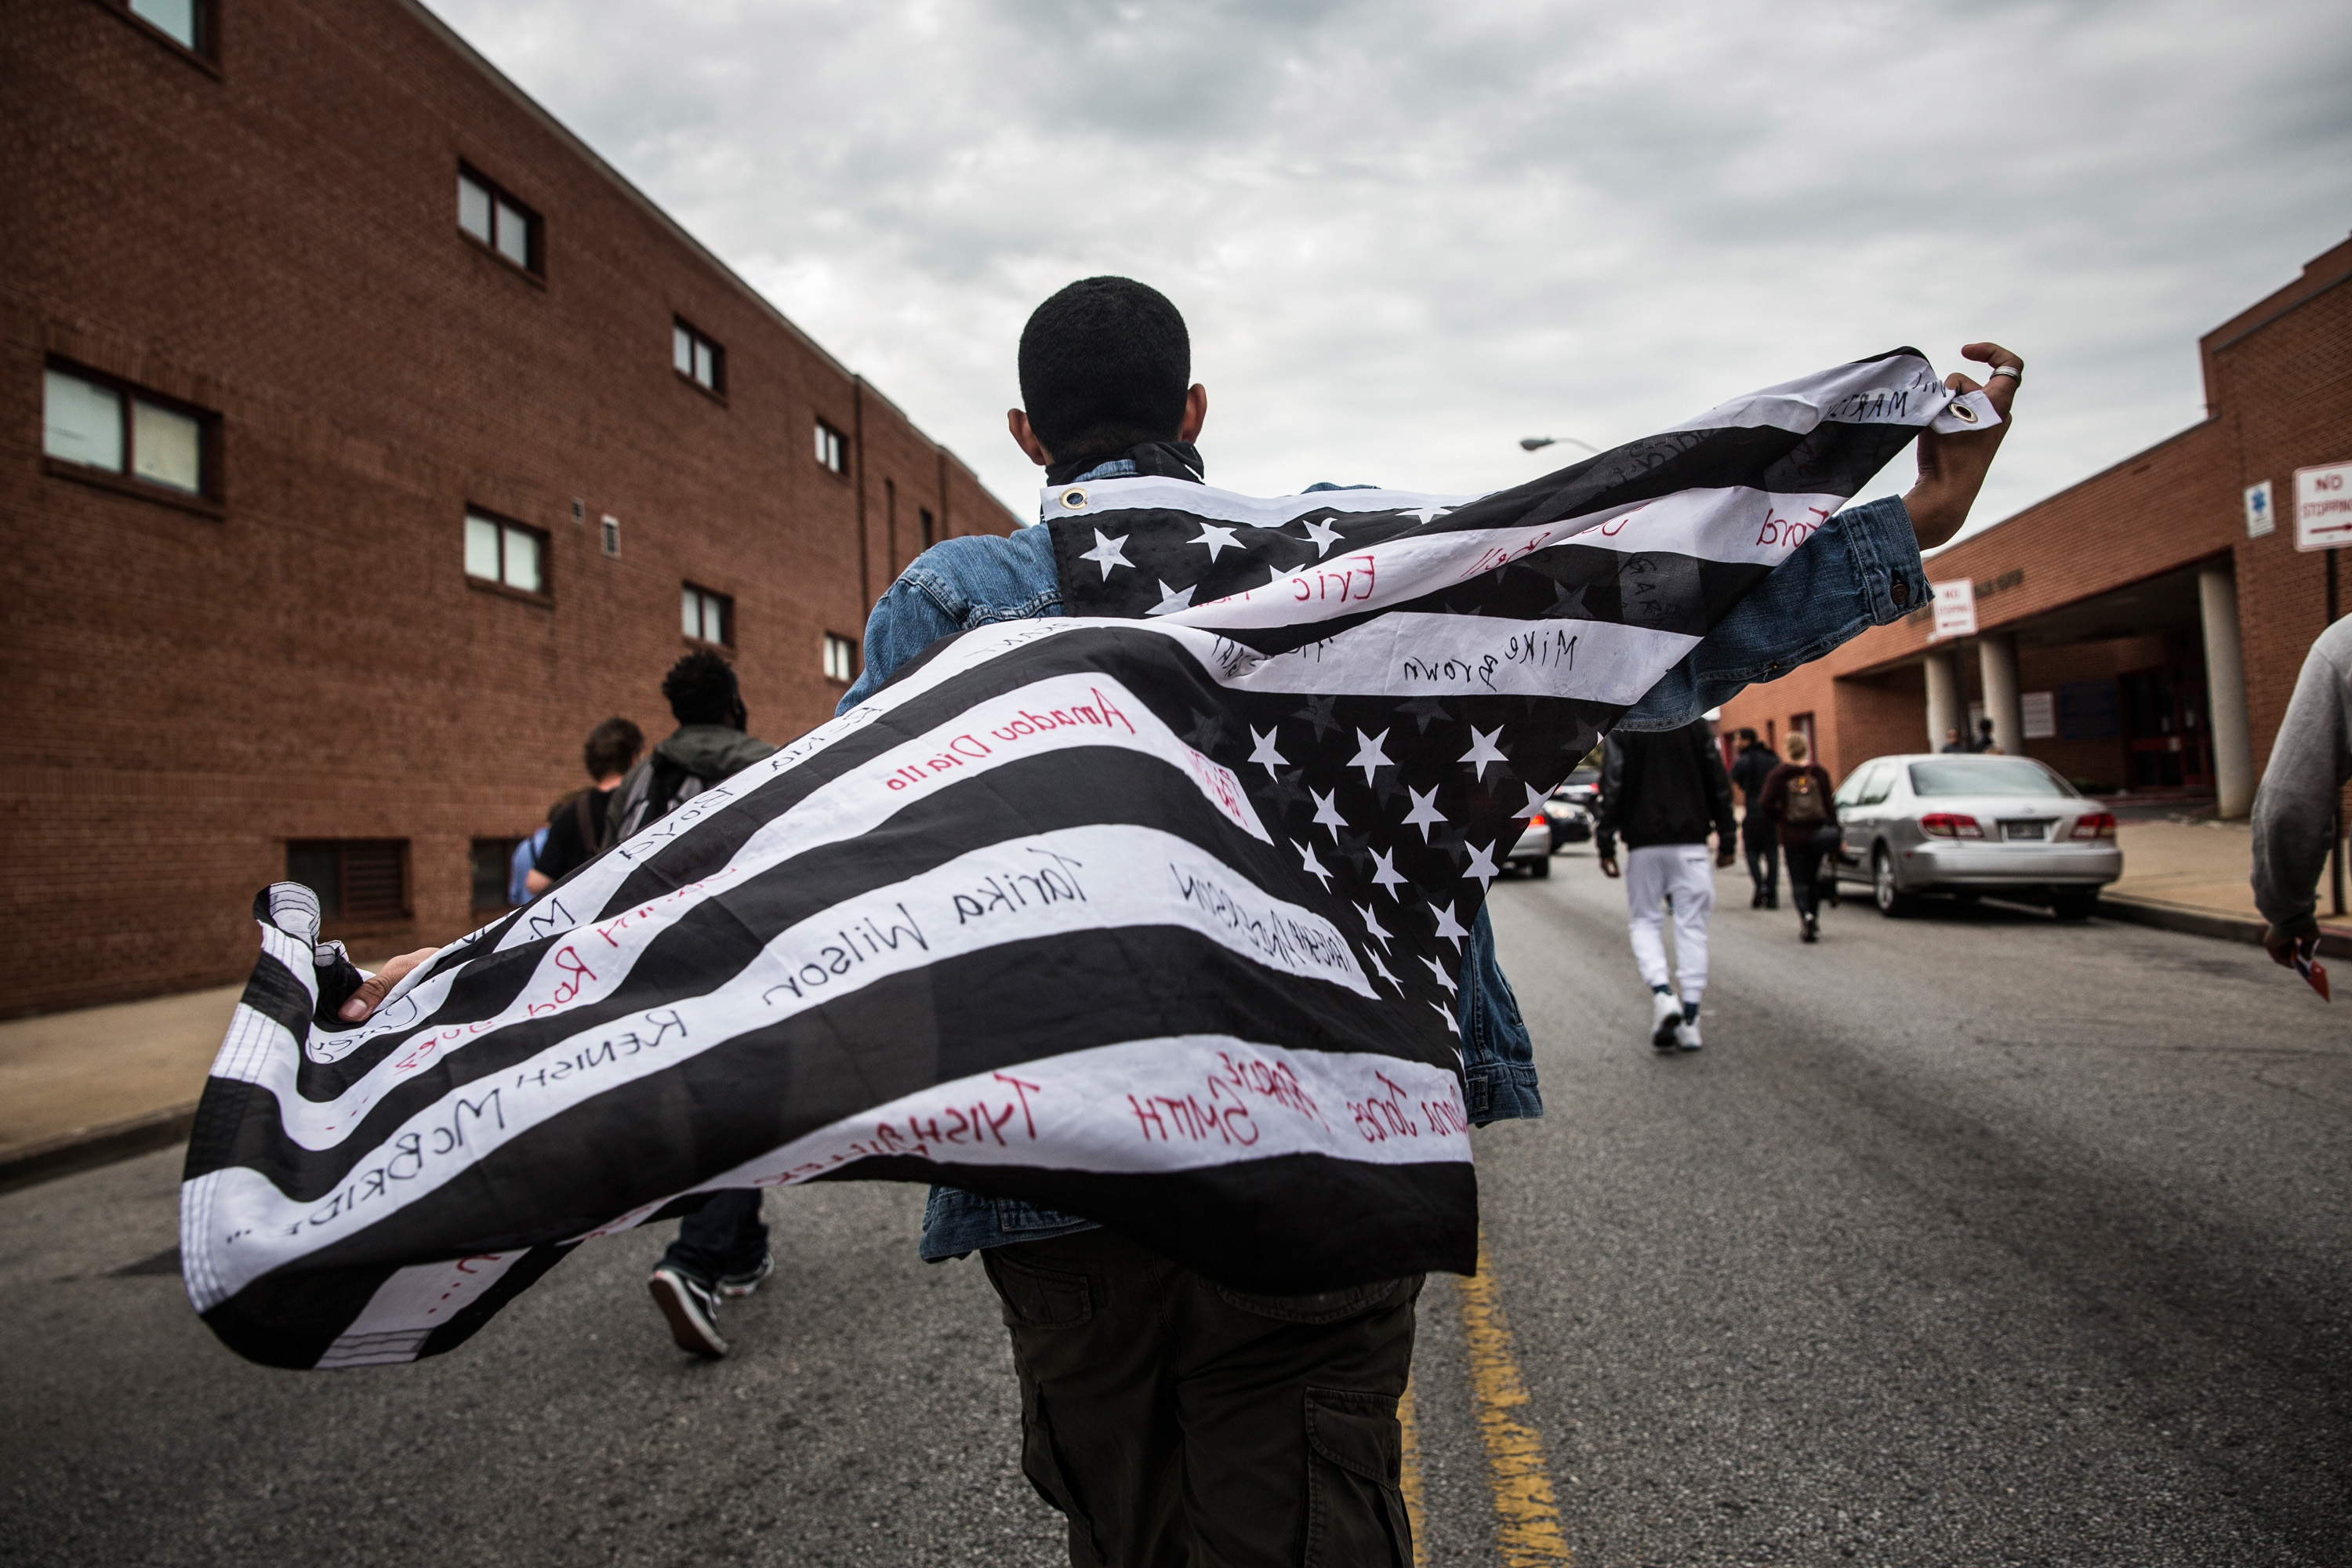 BALTIMORE, MD - MAY 01:  Protesters march through the streets in support of Maryland state attorney Marilyn Mosby's announcement that charges would be filed against Baltimore police officers in the death of Freddie Gray on May 1, 2015 in Baltimore, Maryland. Gray died in police custody after being arrested on April 12, 2015.